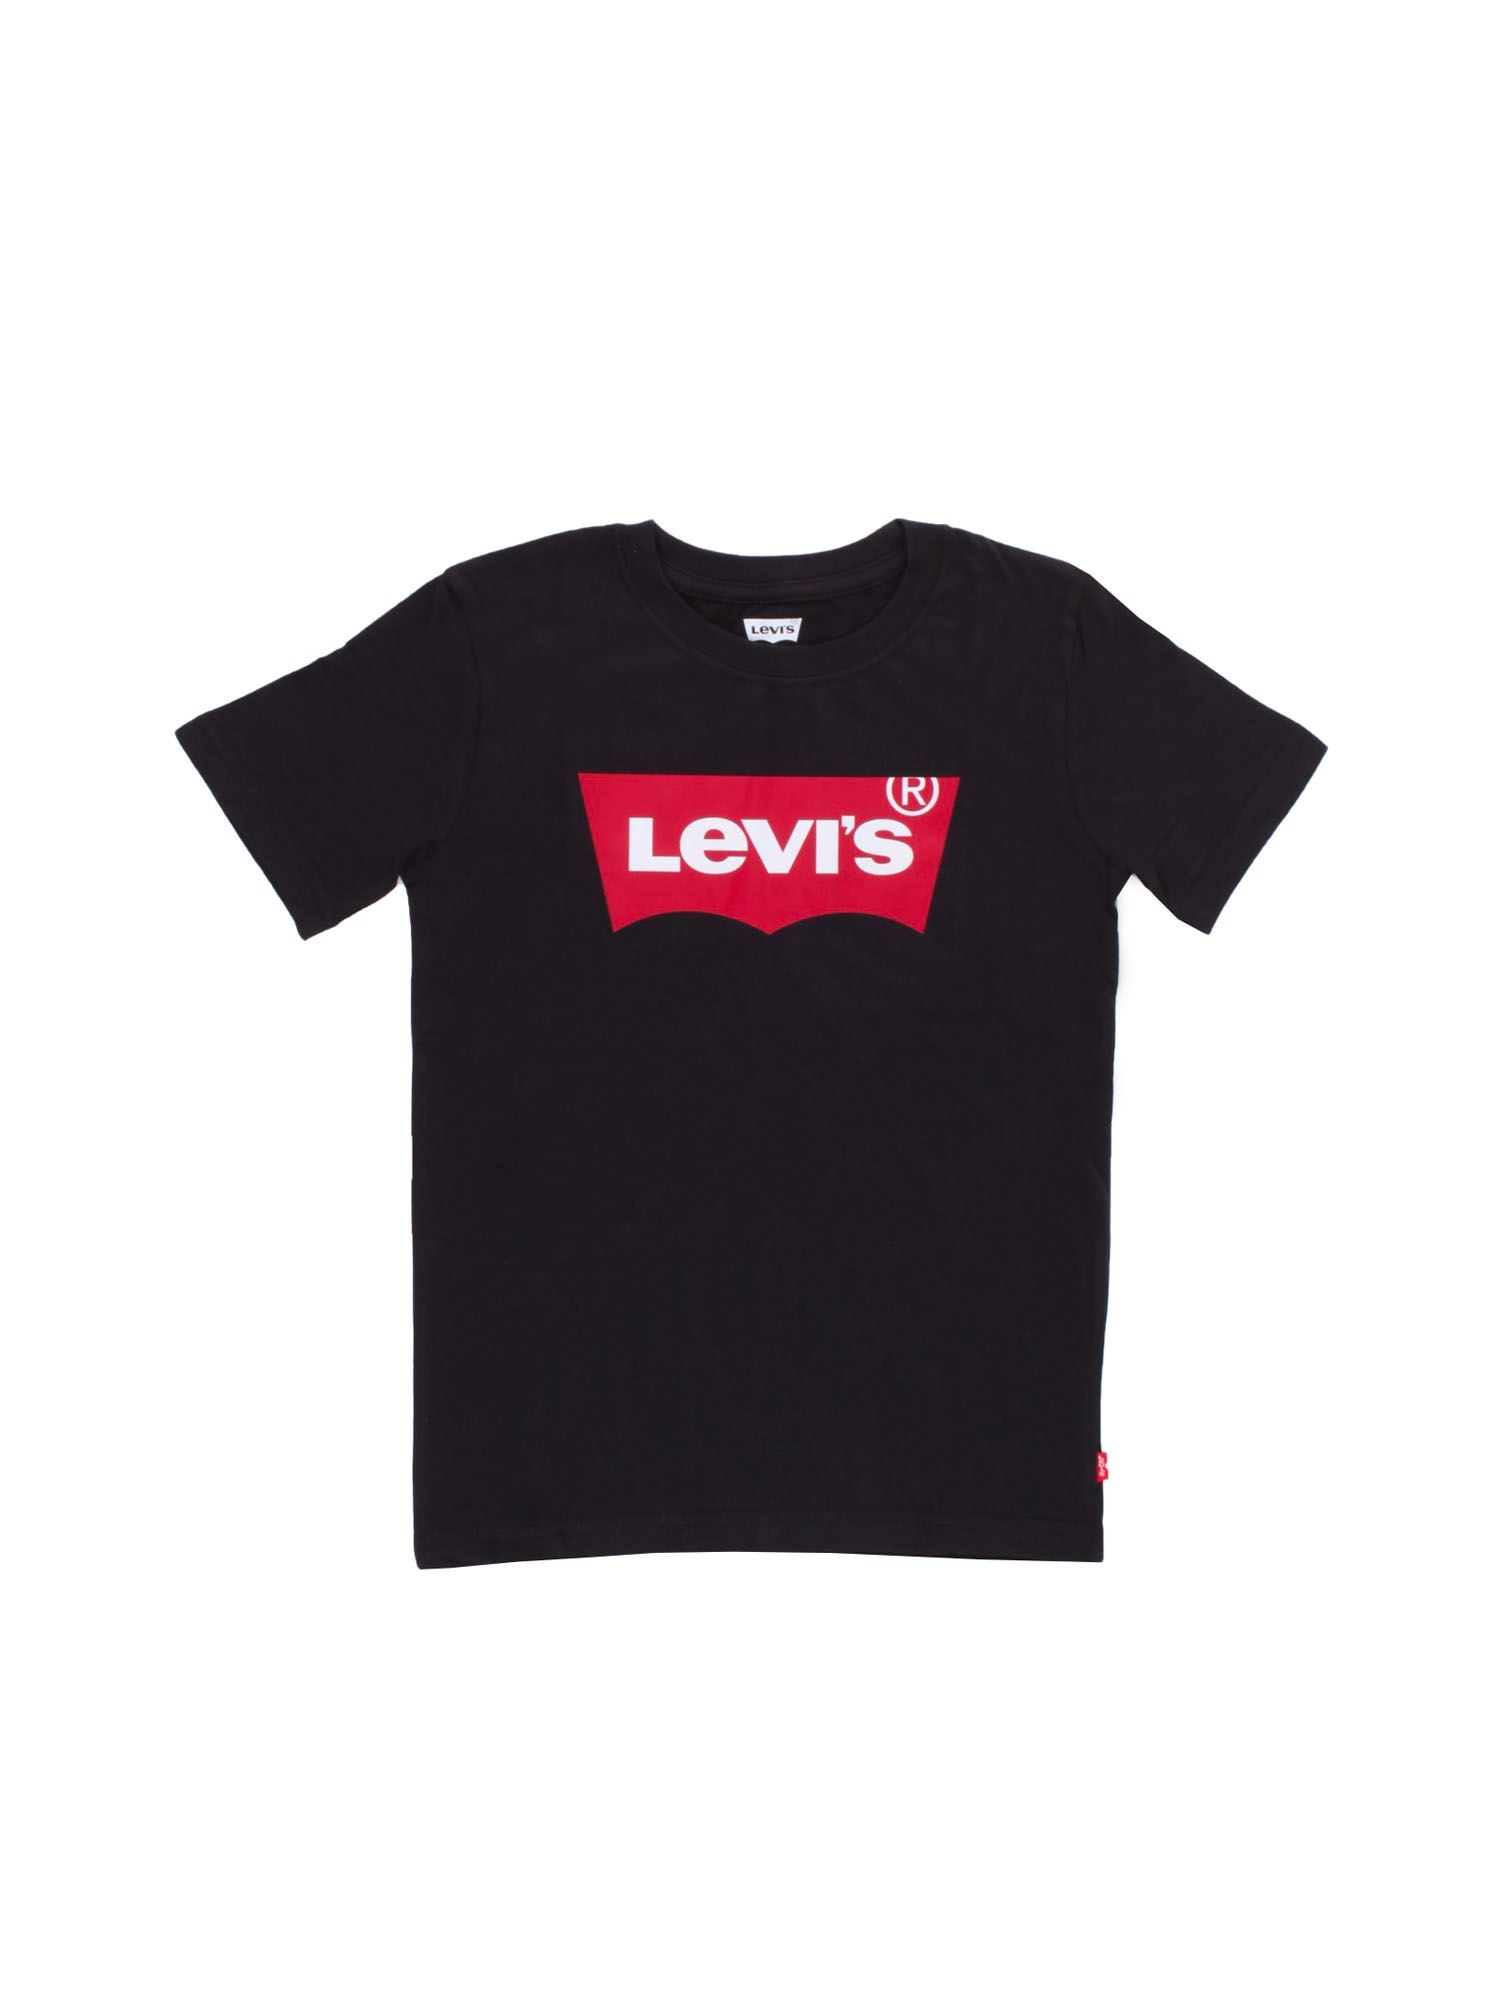 Levi's Cottons LEVI'S BRANDED T-SHIRT IN BLACK